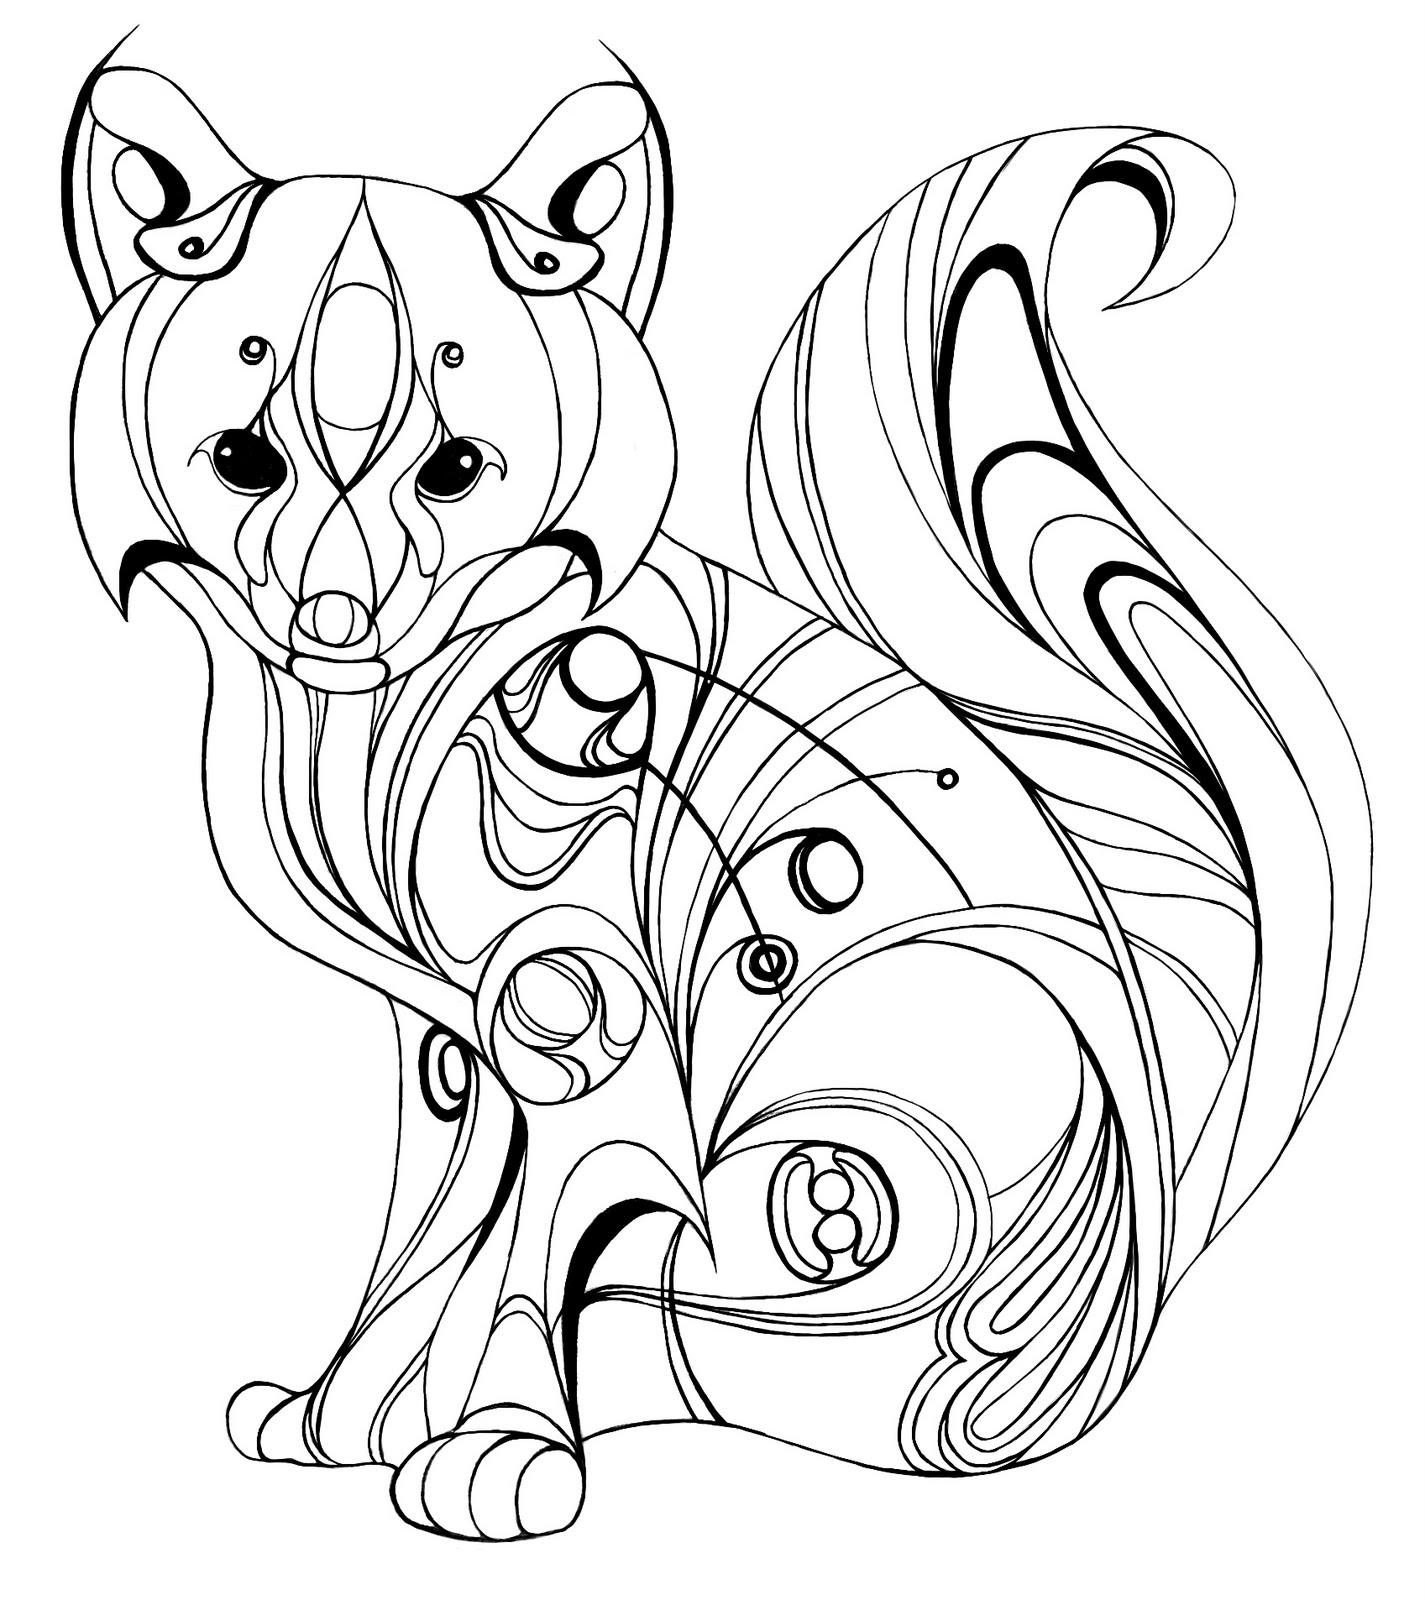 foxes coloring pages fox coloring pages download and print fox coloring pages foxes pages coloring